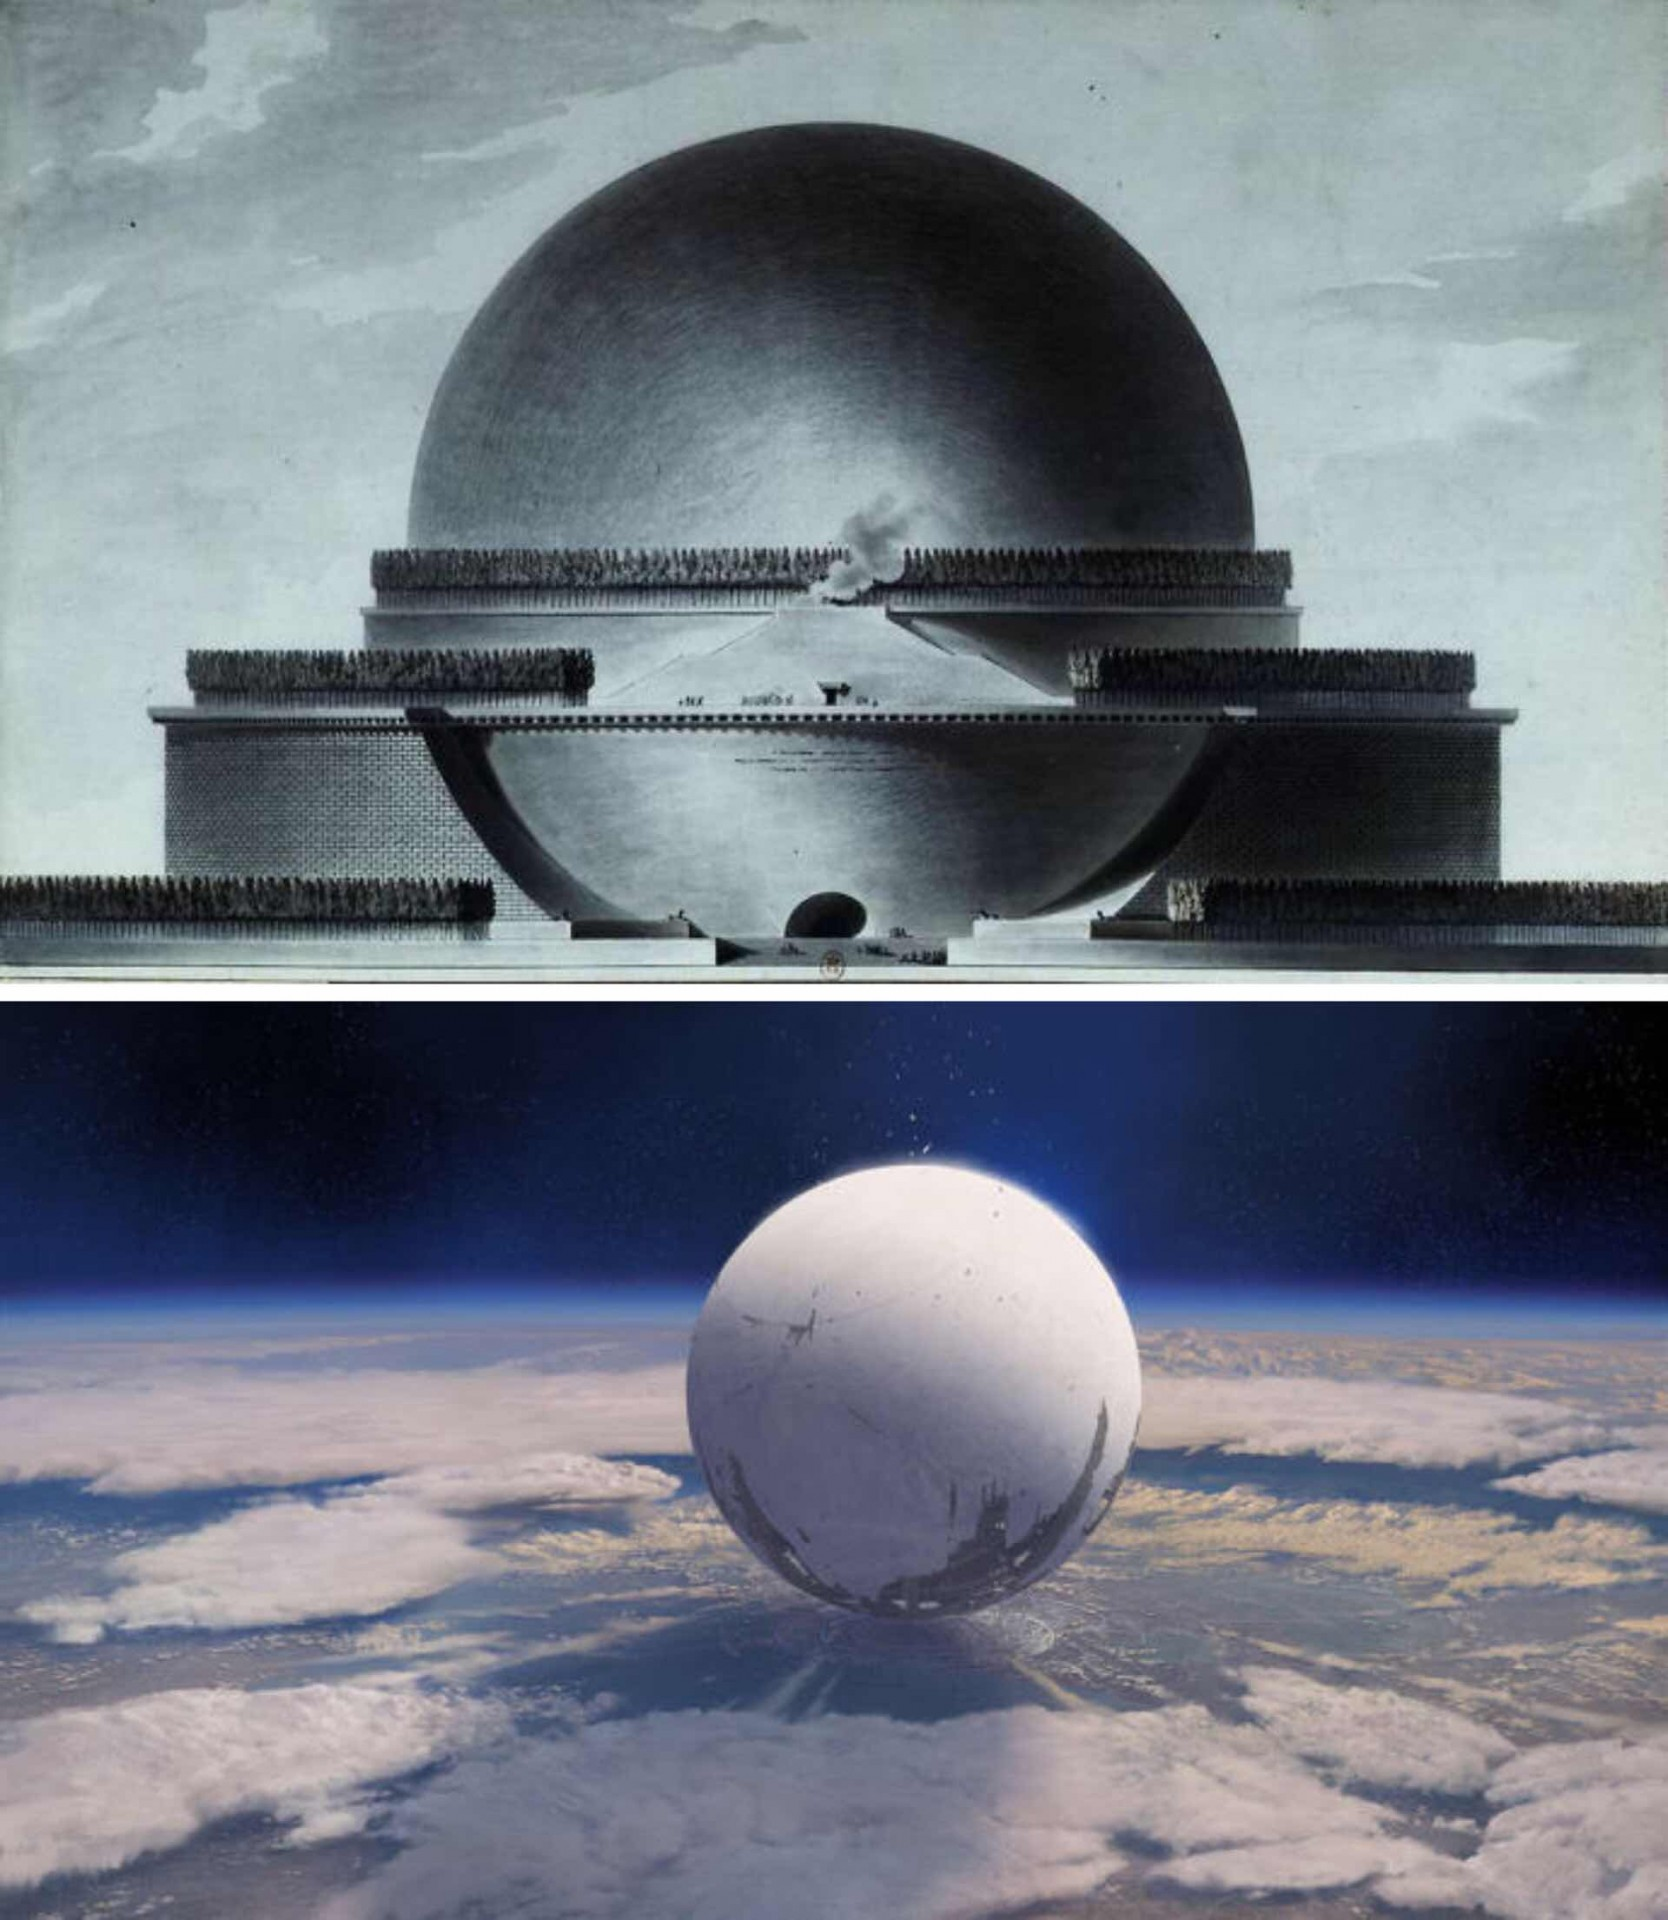 Top: The Temple of Death (a cenotaph for Isaac Newton) by Étienne-Louis BoulléeBottom: The Traveler, Destiny